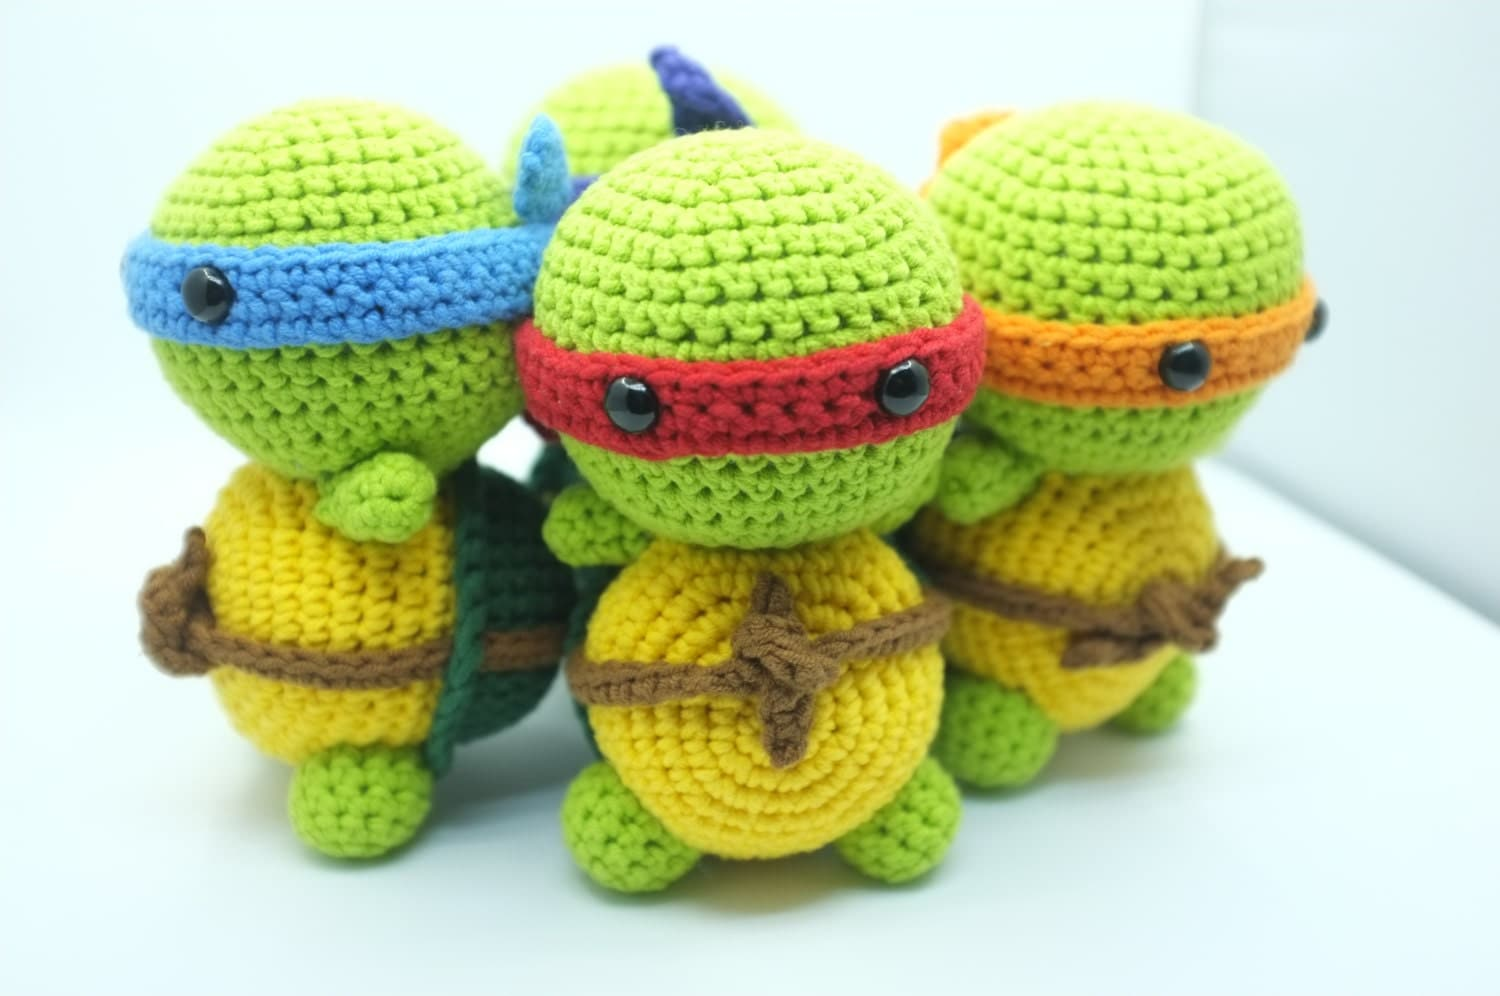 Amigurumi For Beginner : Amigurumi Patterns For Beginners Related Keywords ...